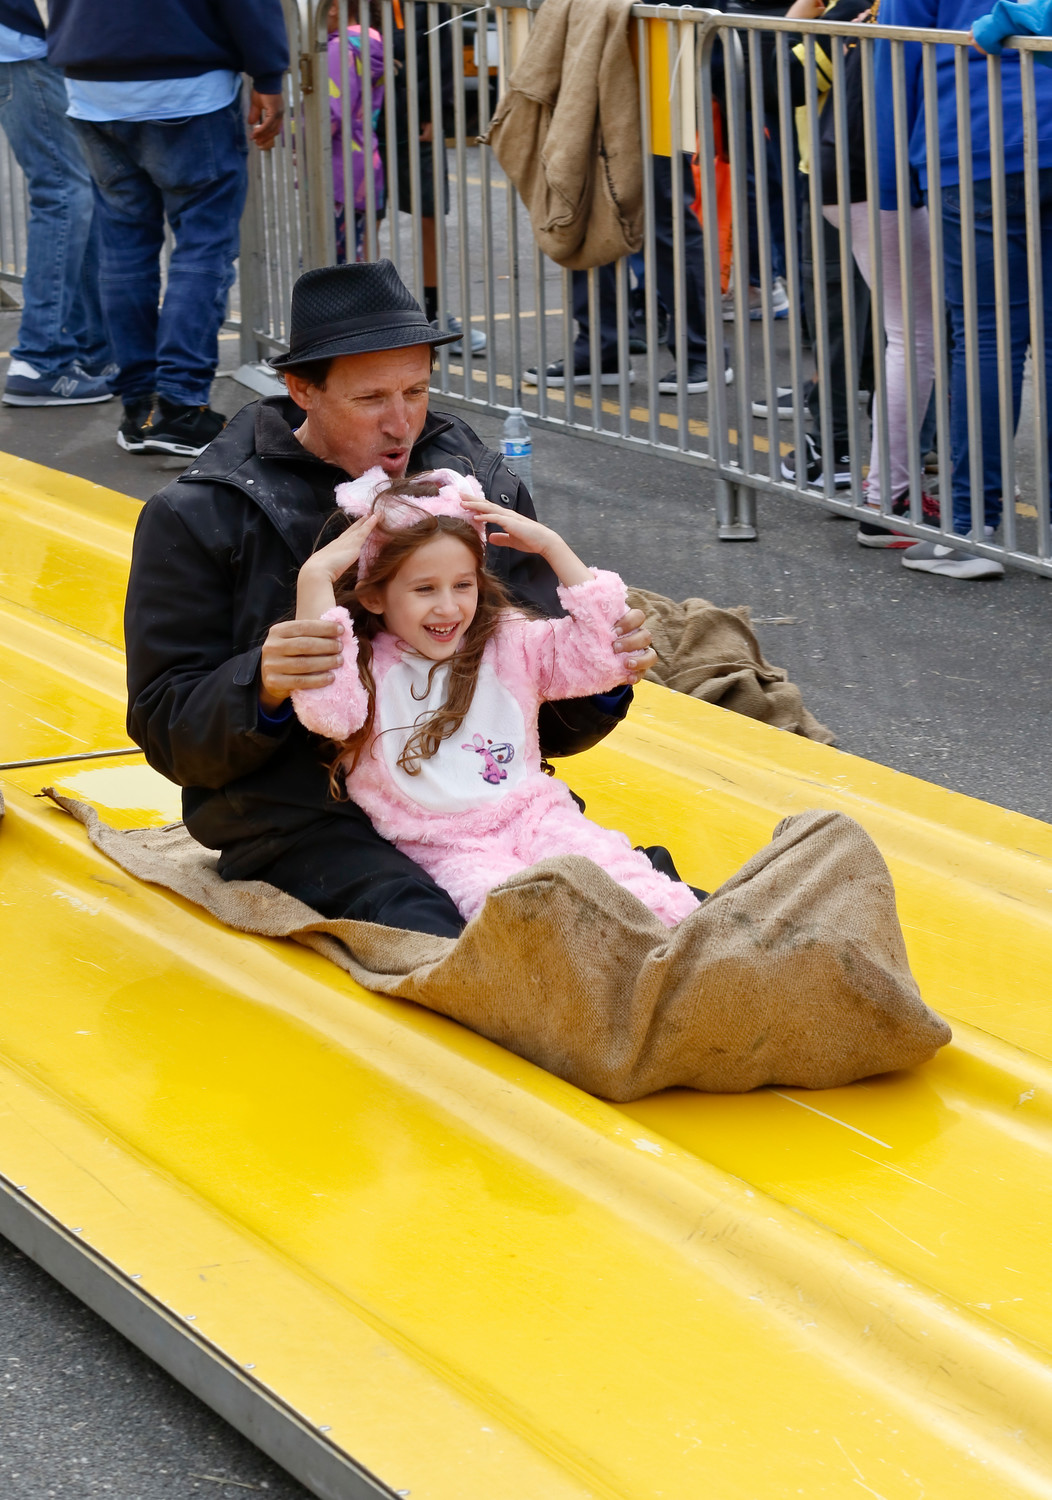 Sophie Rusgo, 6, dressed as the Energizer Bunny and flew down the slide with her father, Steven.